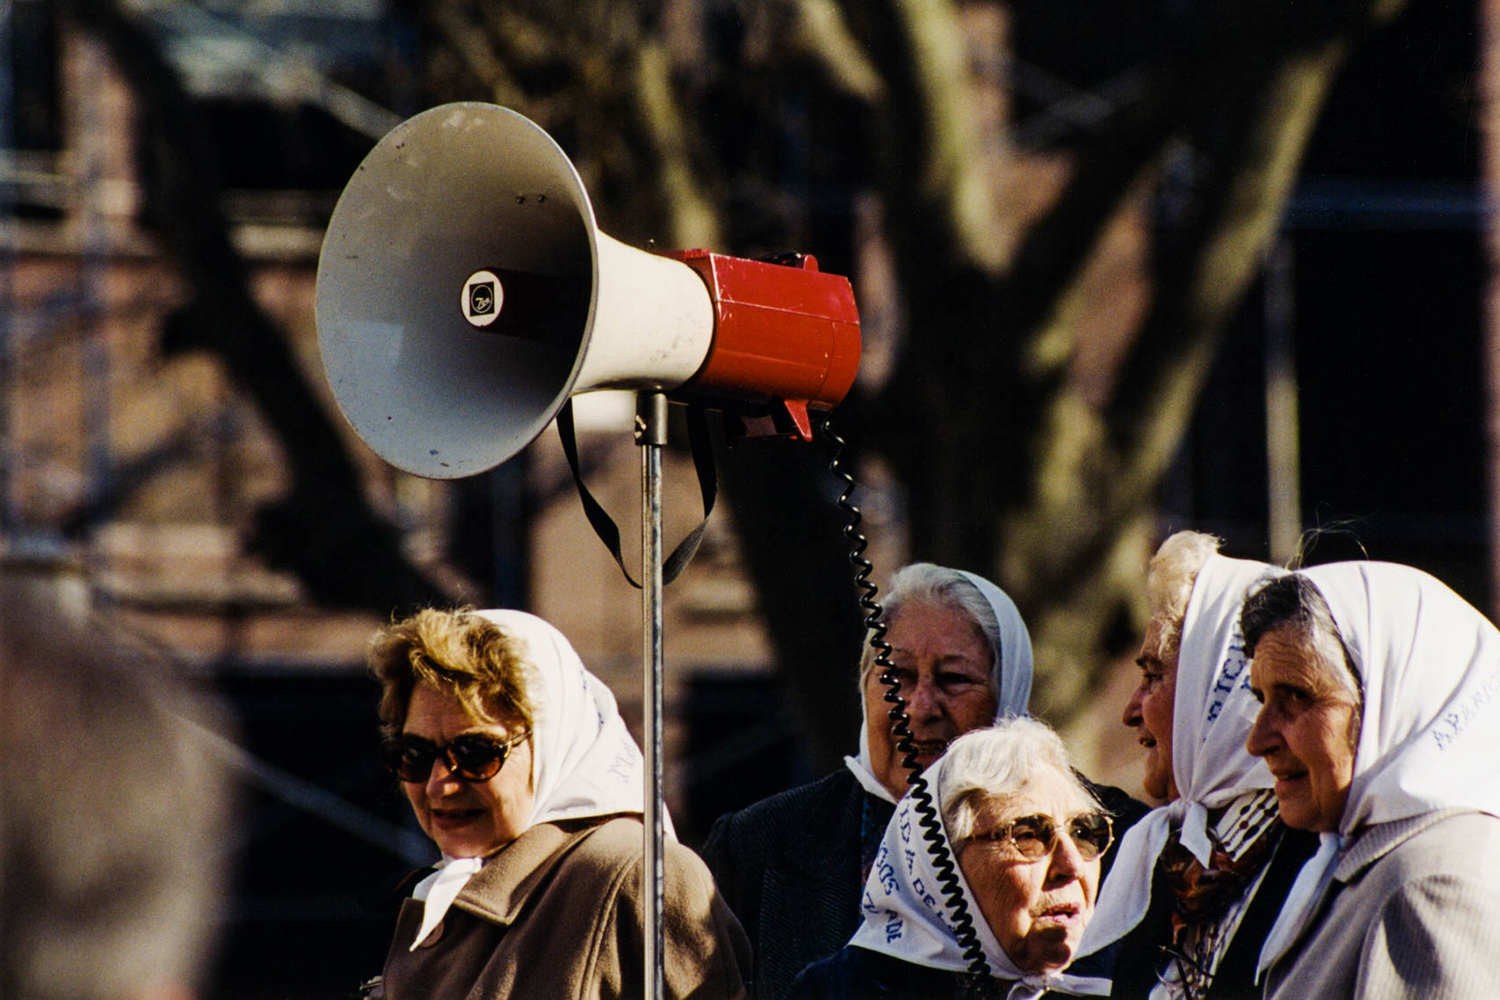 <p>Some of the Madres de la Plaza de Mayo prepare to air their calls for justice directly at the presidential palace in Buenos Aires. Their intense expressions match the determination they have shown in their decades-long struggle for accountability.</p>